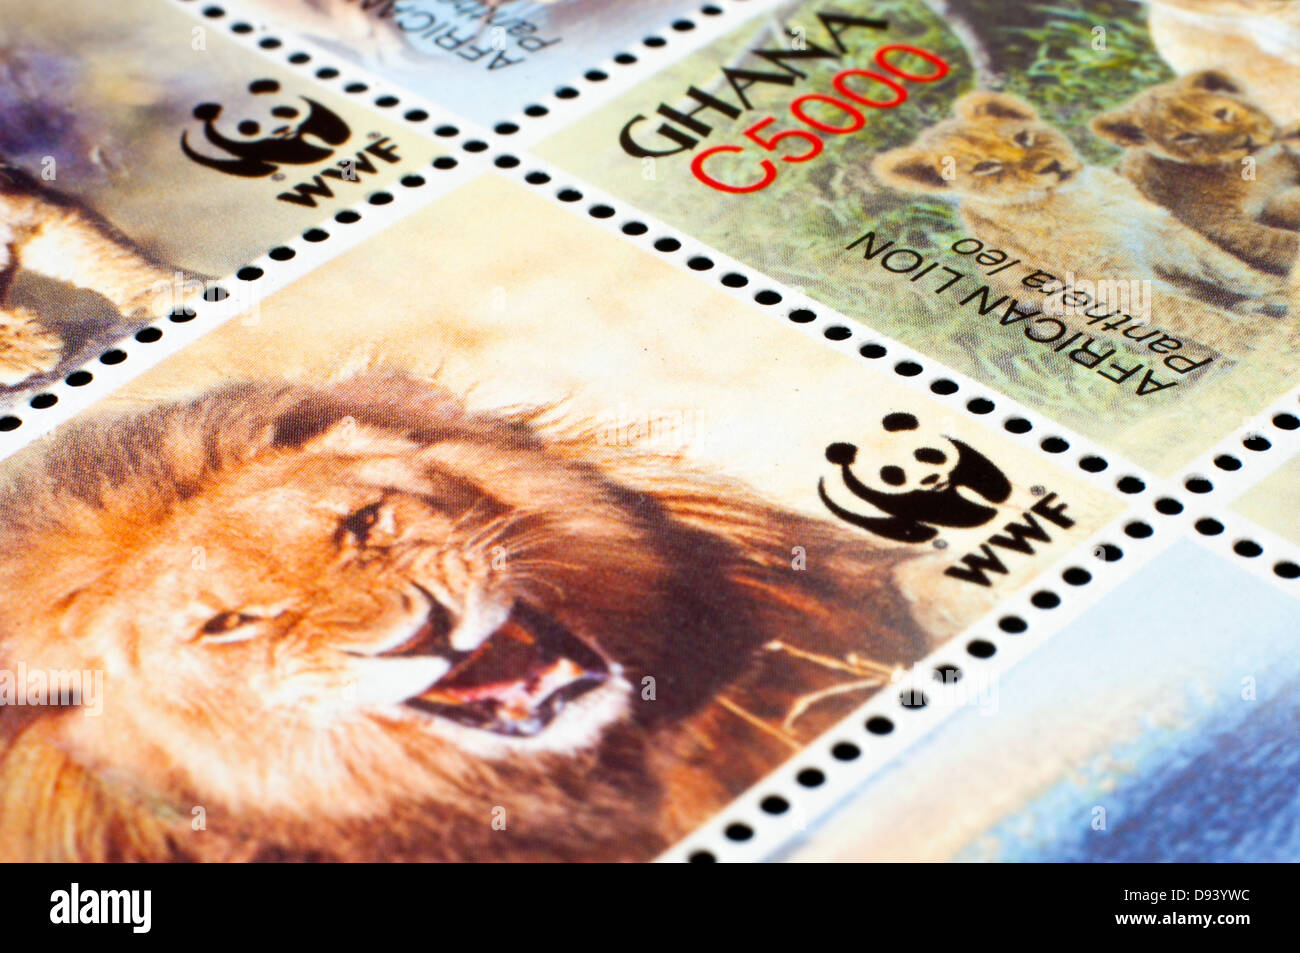 ghanian postage stamps in studio setting - Stock Image